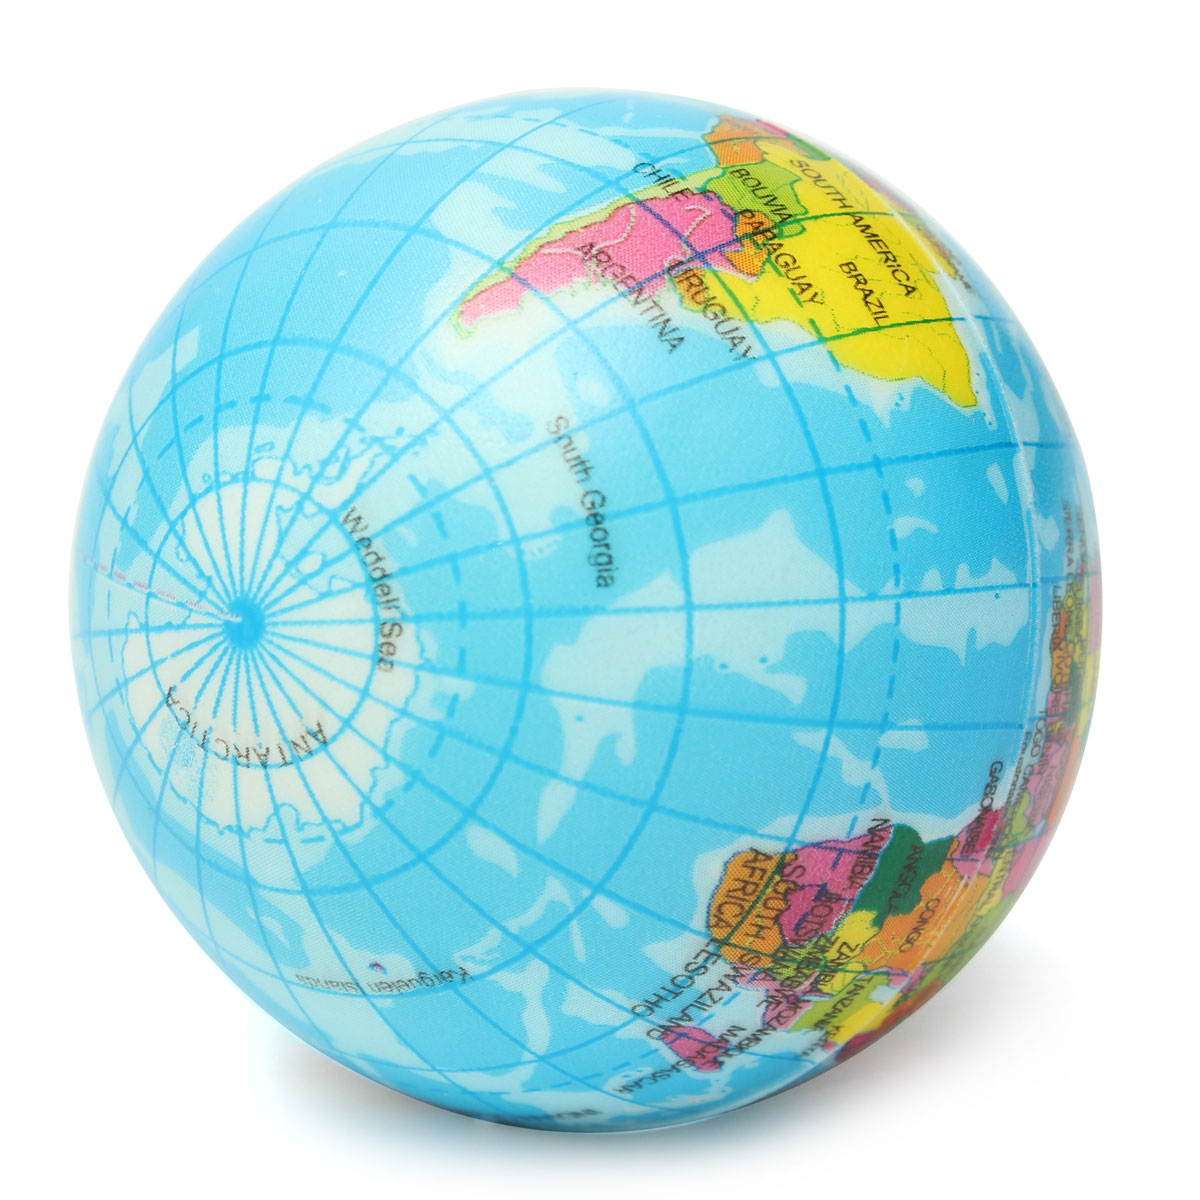 Earth globe planet world map foam stress relief bouncy press ball ec6cdd99 bd0d 022d eed8 e622fab4c5b2g gumiabroncs Choice Image